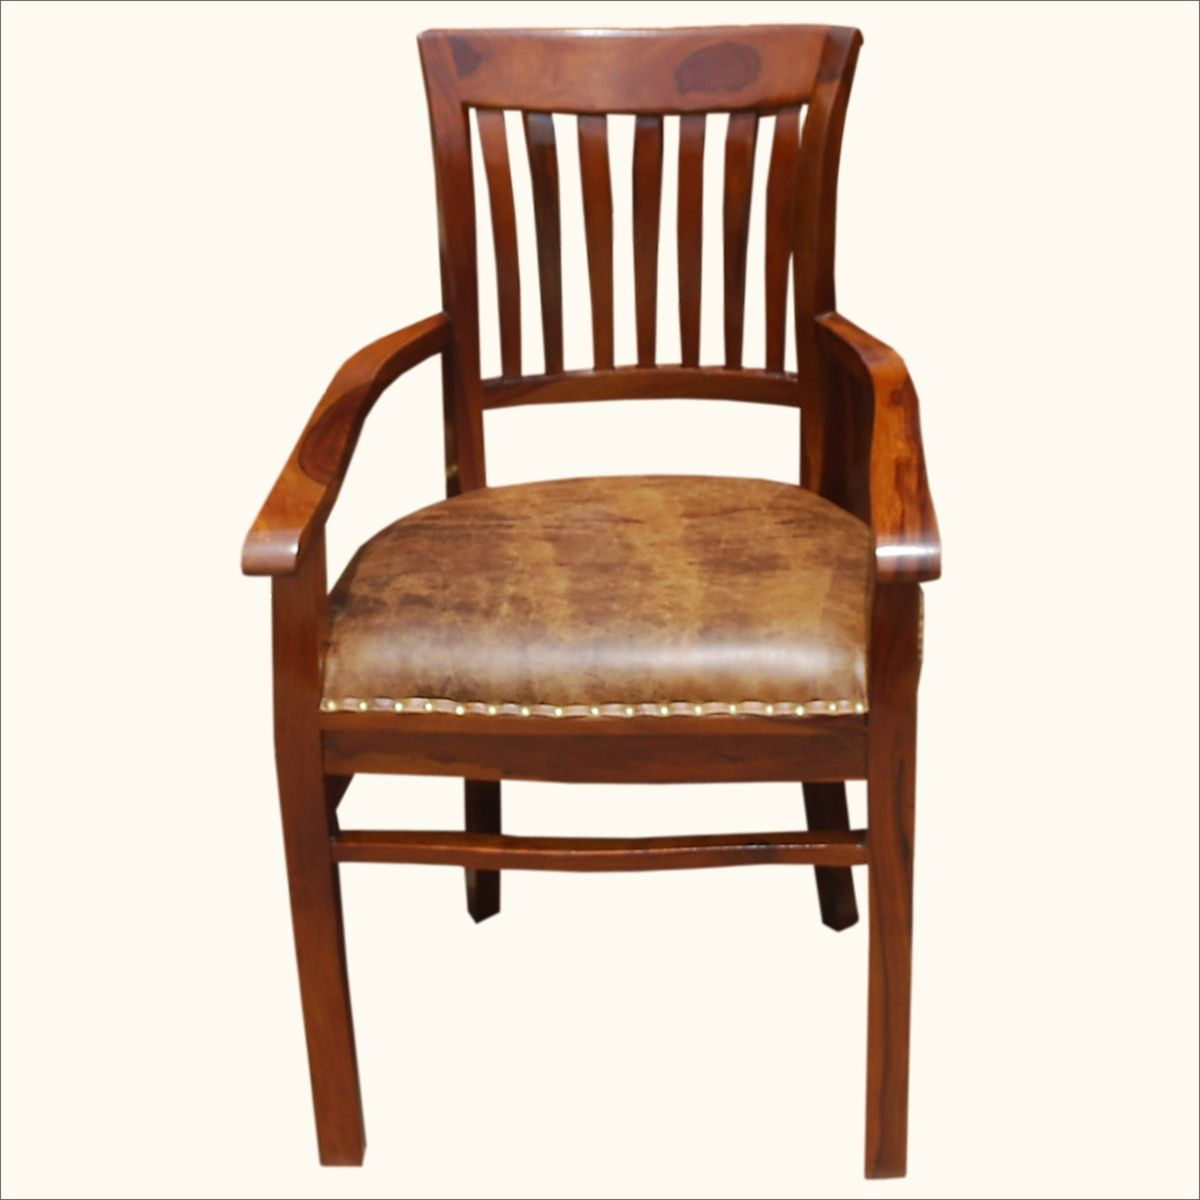 Use the landon dining chair for a sleek modern farmhouse charm in your kitchen or dining room. Chantilly Chic Handcrafted Rosewood Leather Cushion Dining ...